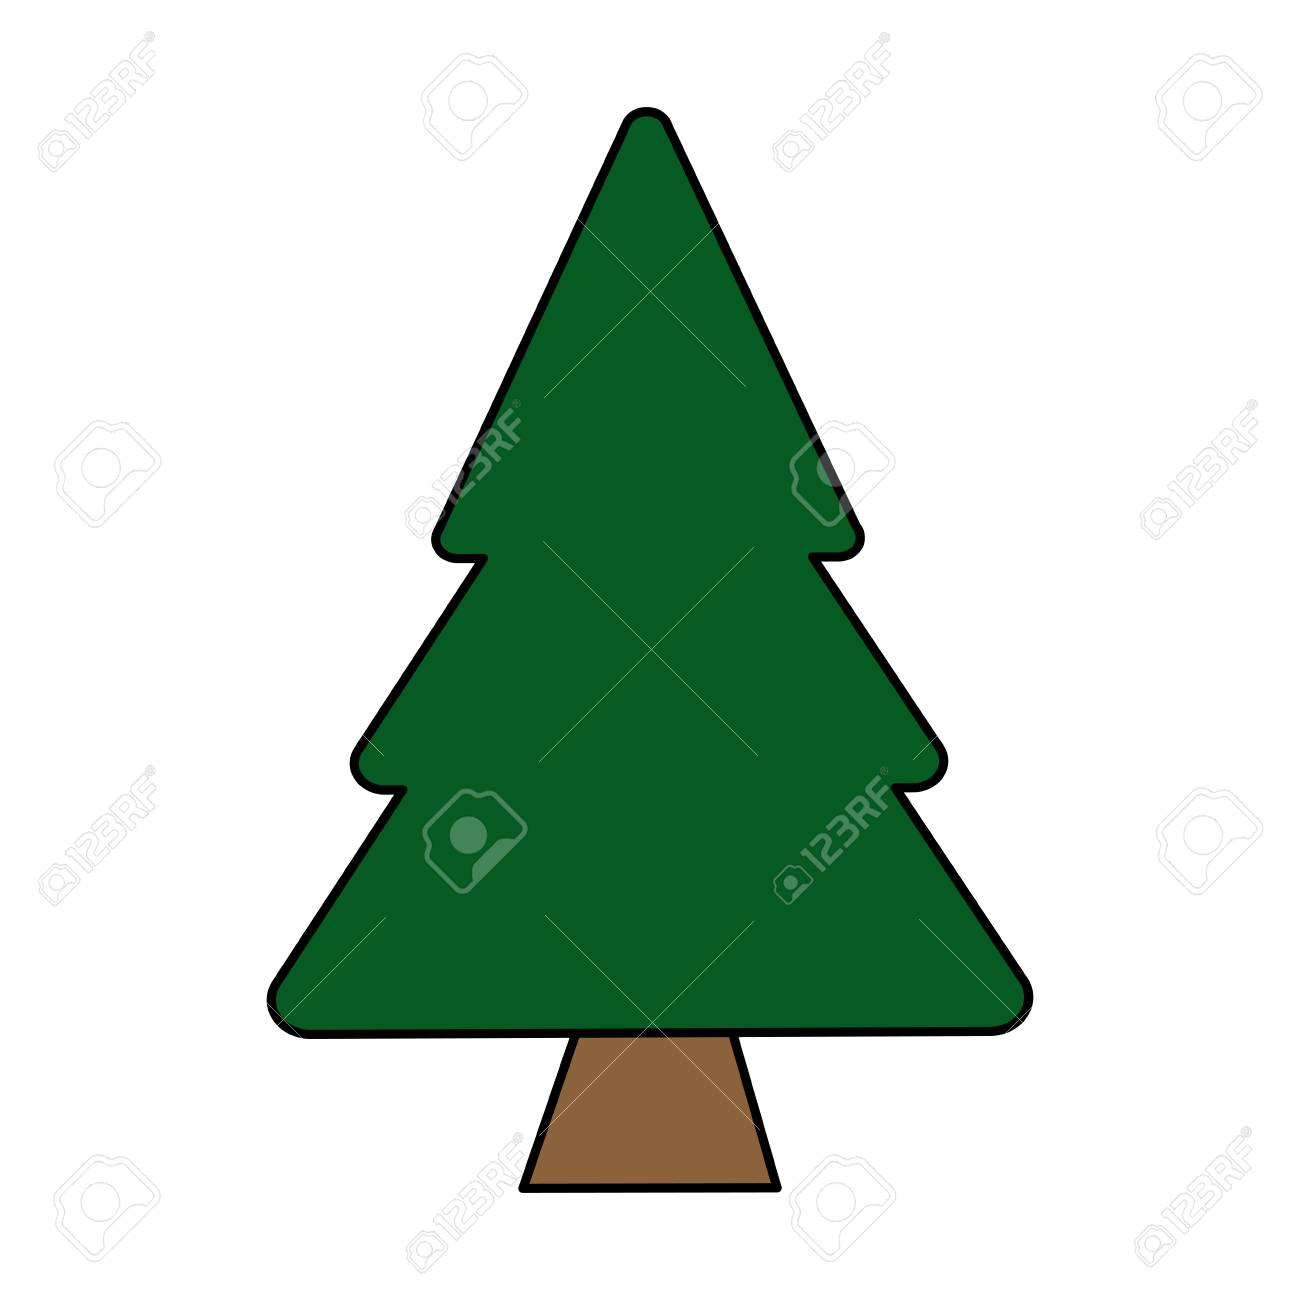 Colorful Image Cartoon Pine Tree Vector Illustration Stock